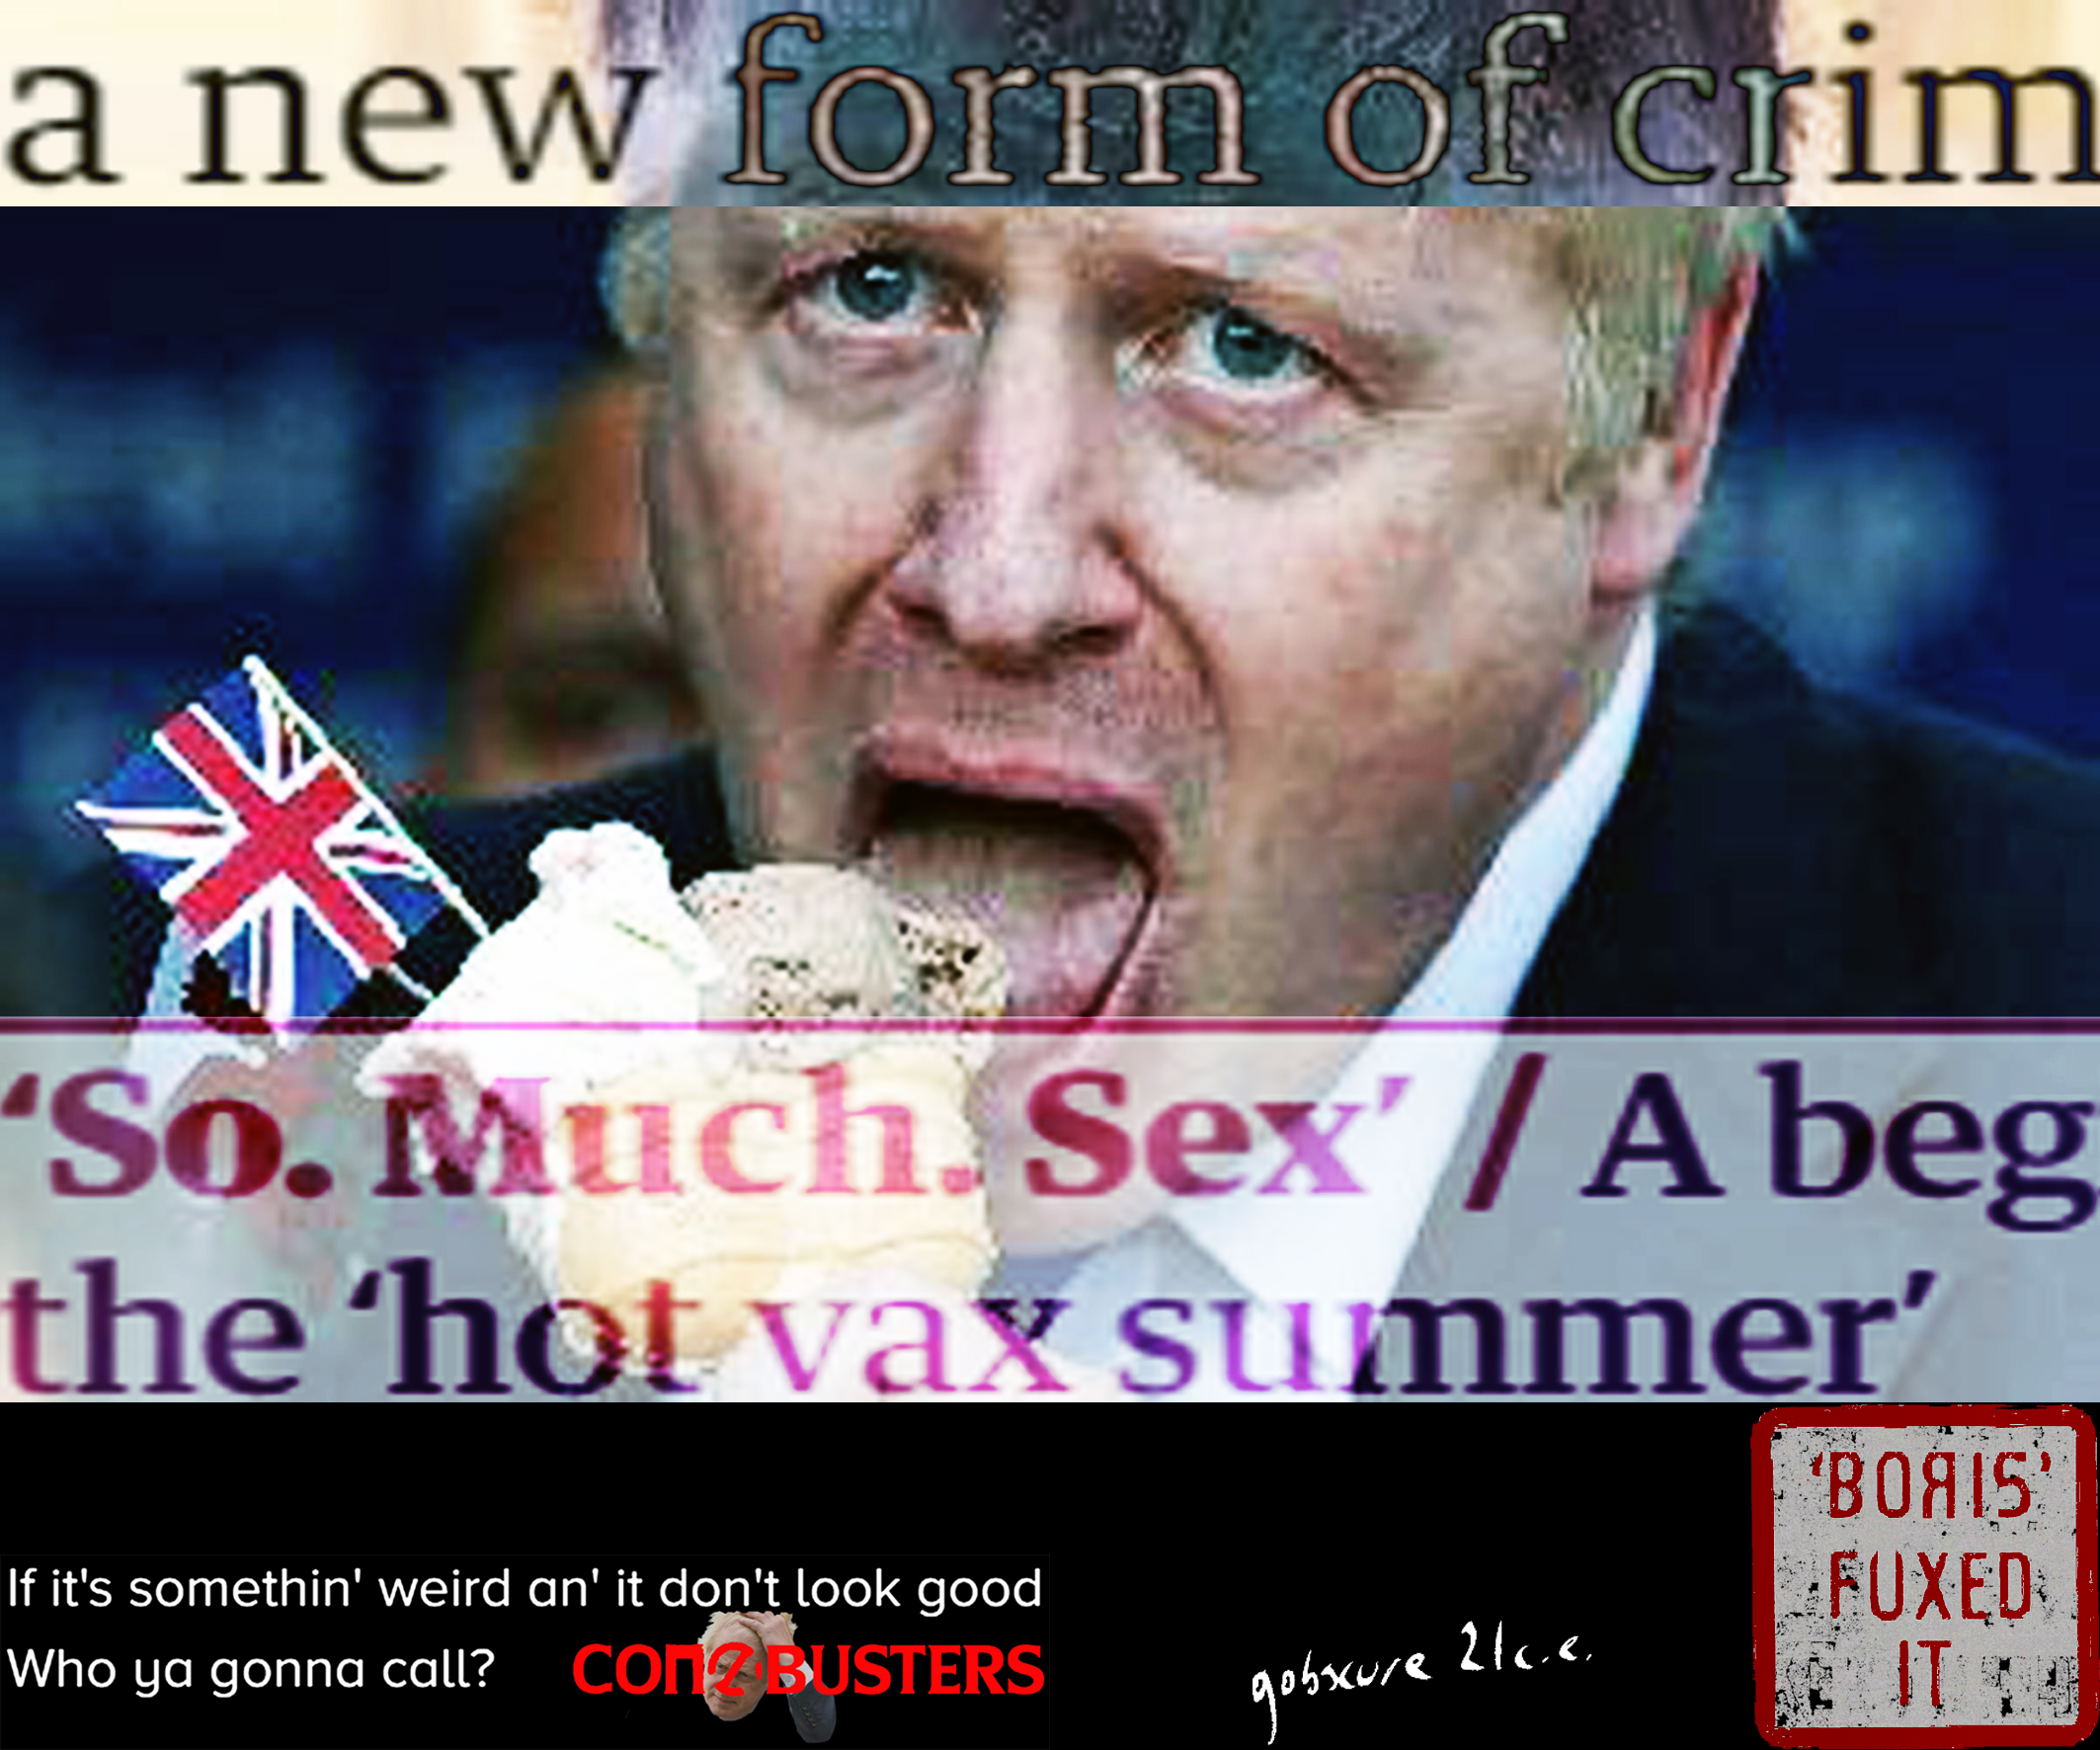 Satirical collage featuring Boris Johnson eating an ice cream under the headlines a new form of crim and the hot vax summer